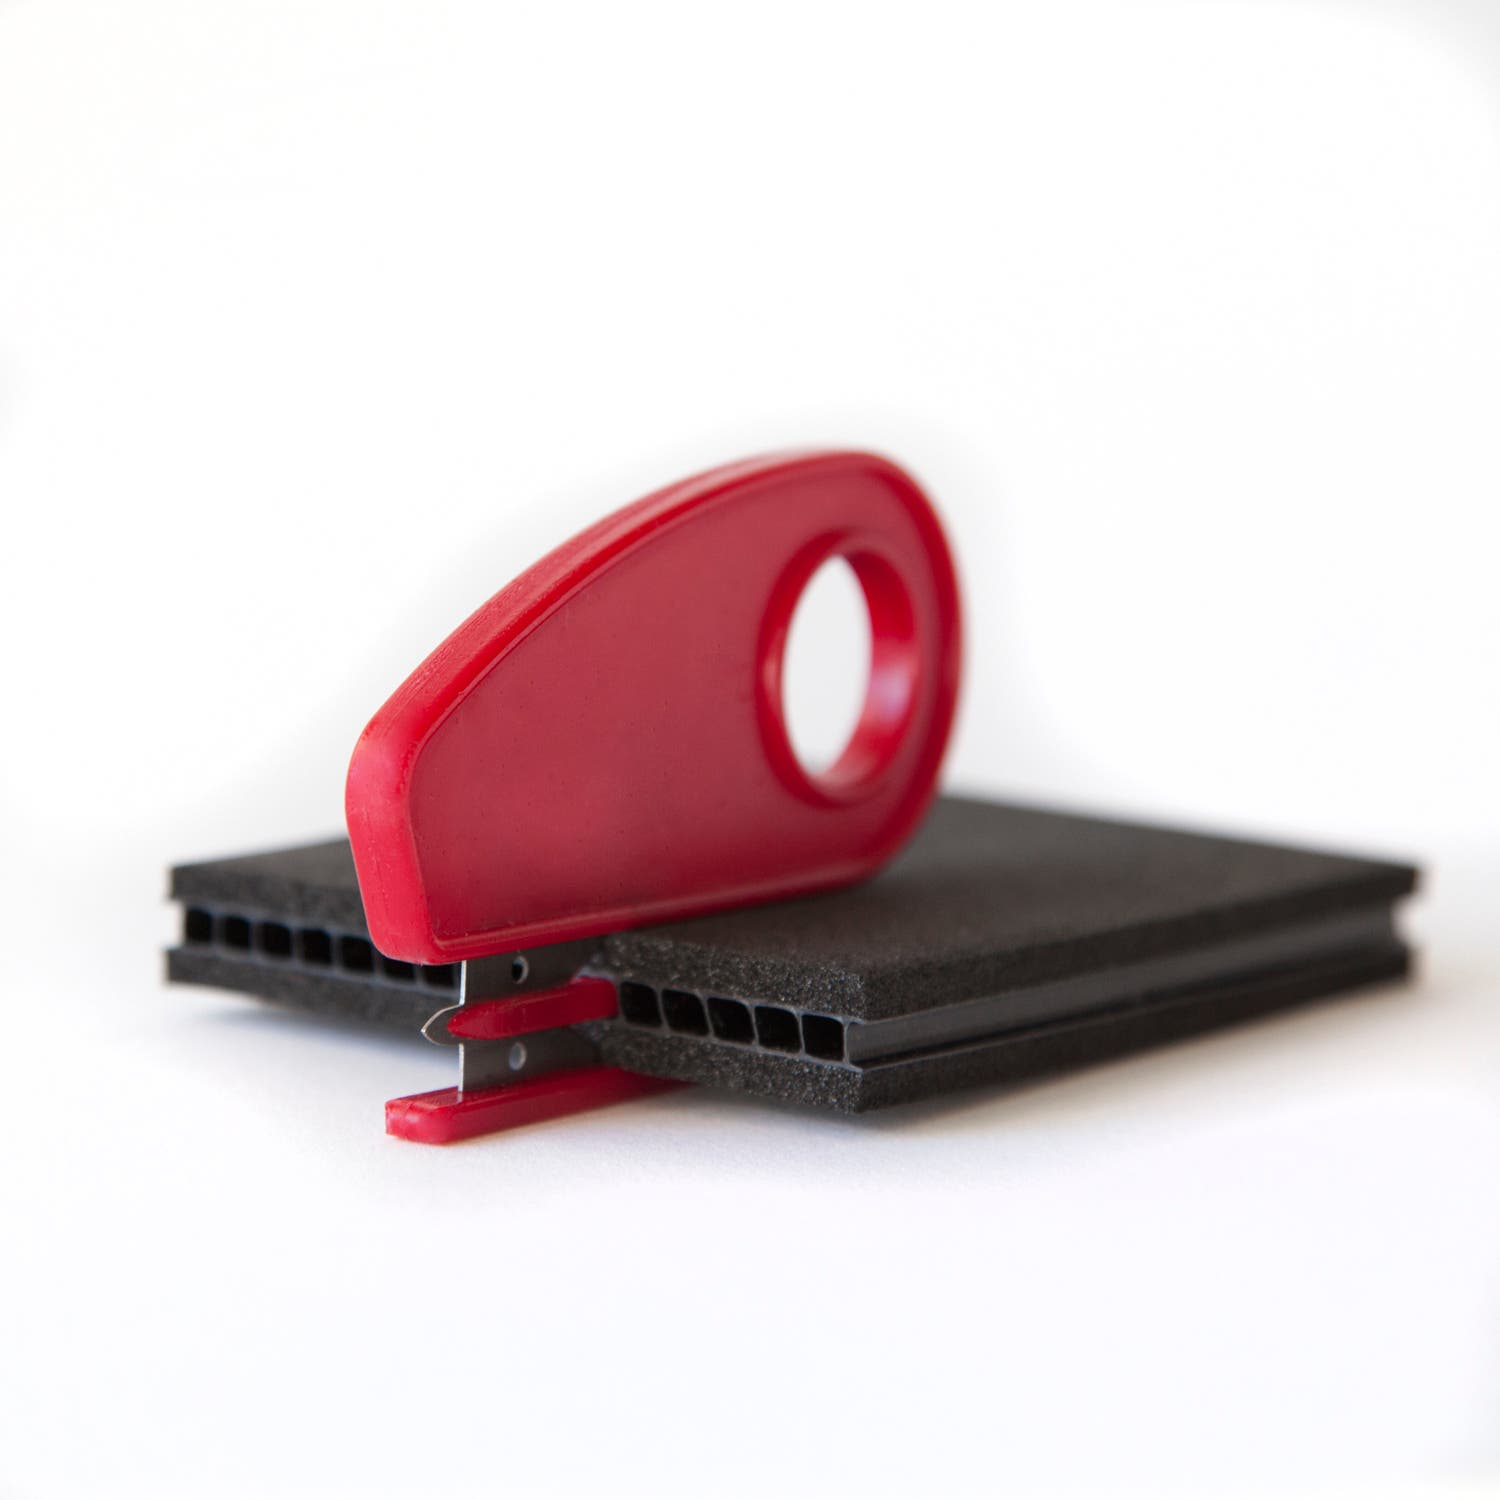 TrekPak Designs Tool Specifically For Cutting Their Dividers